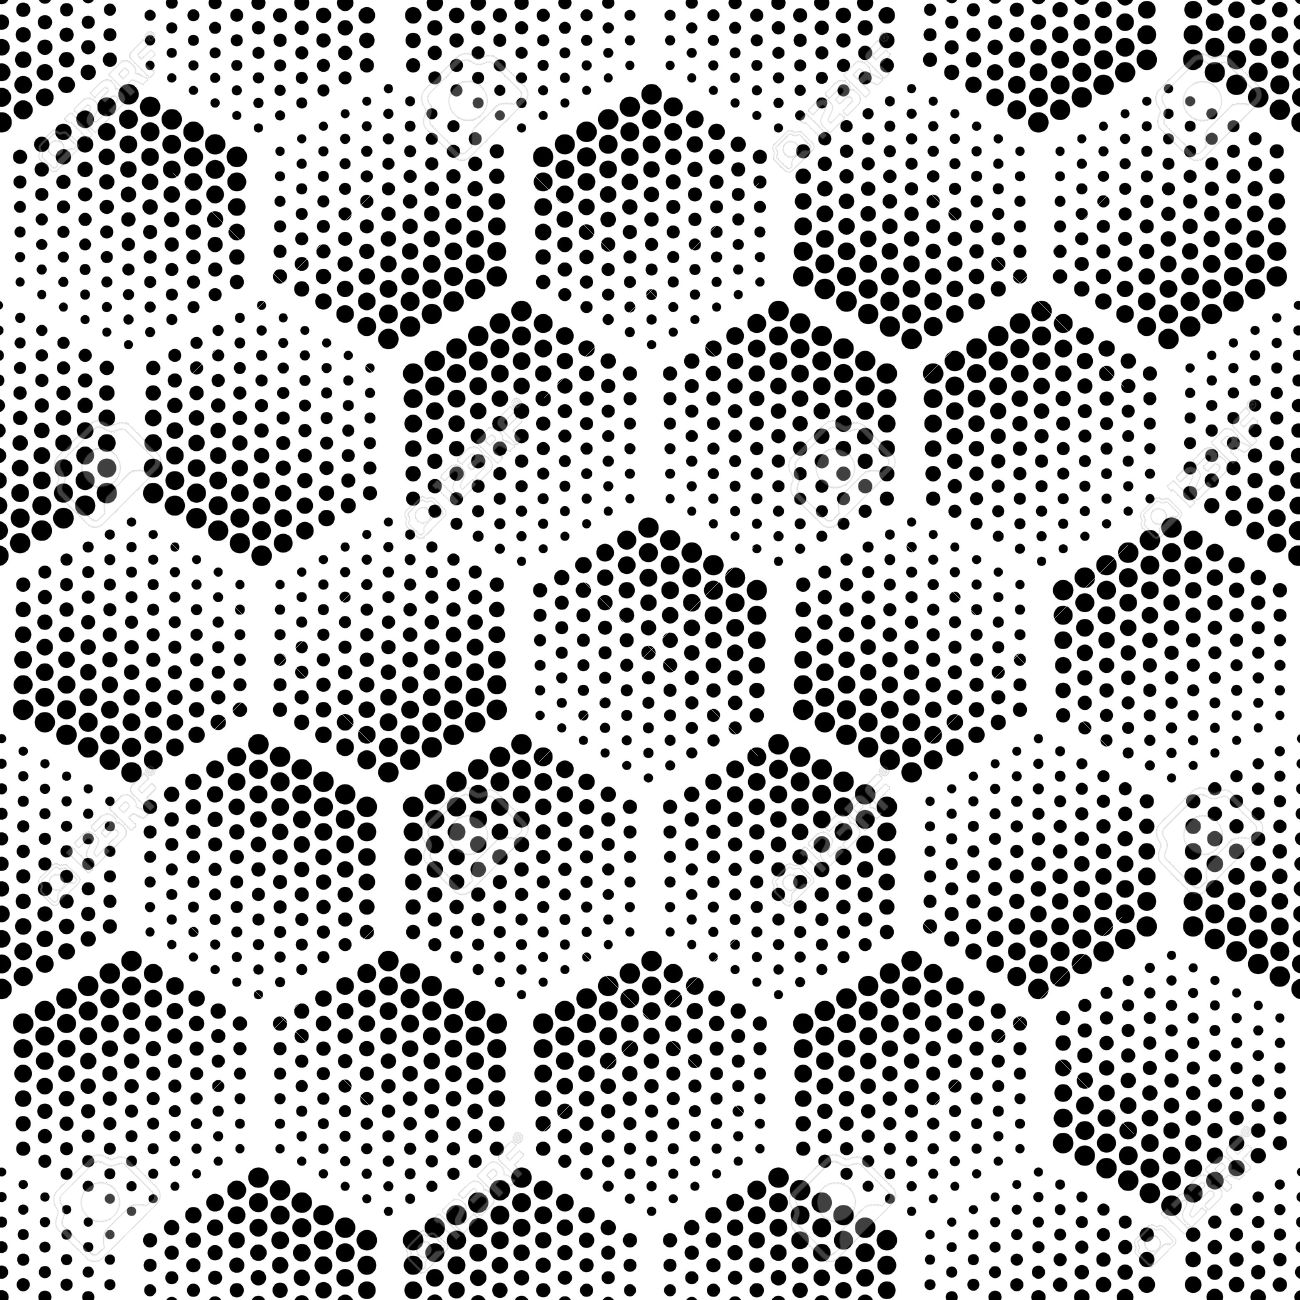 Vector geometric halftone seamless pattern. Retro pointillism vector seamless background. Vector old school design. Vector dotted texture - 56835679